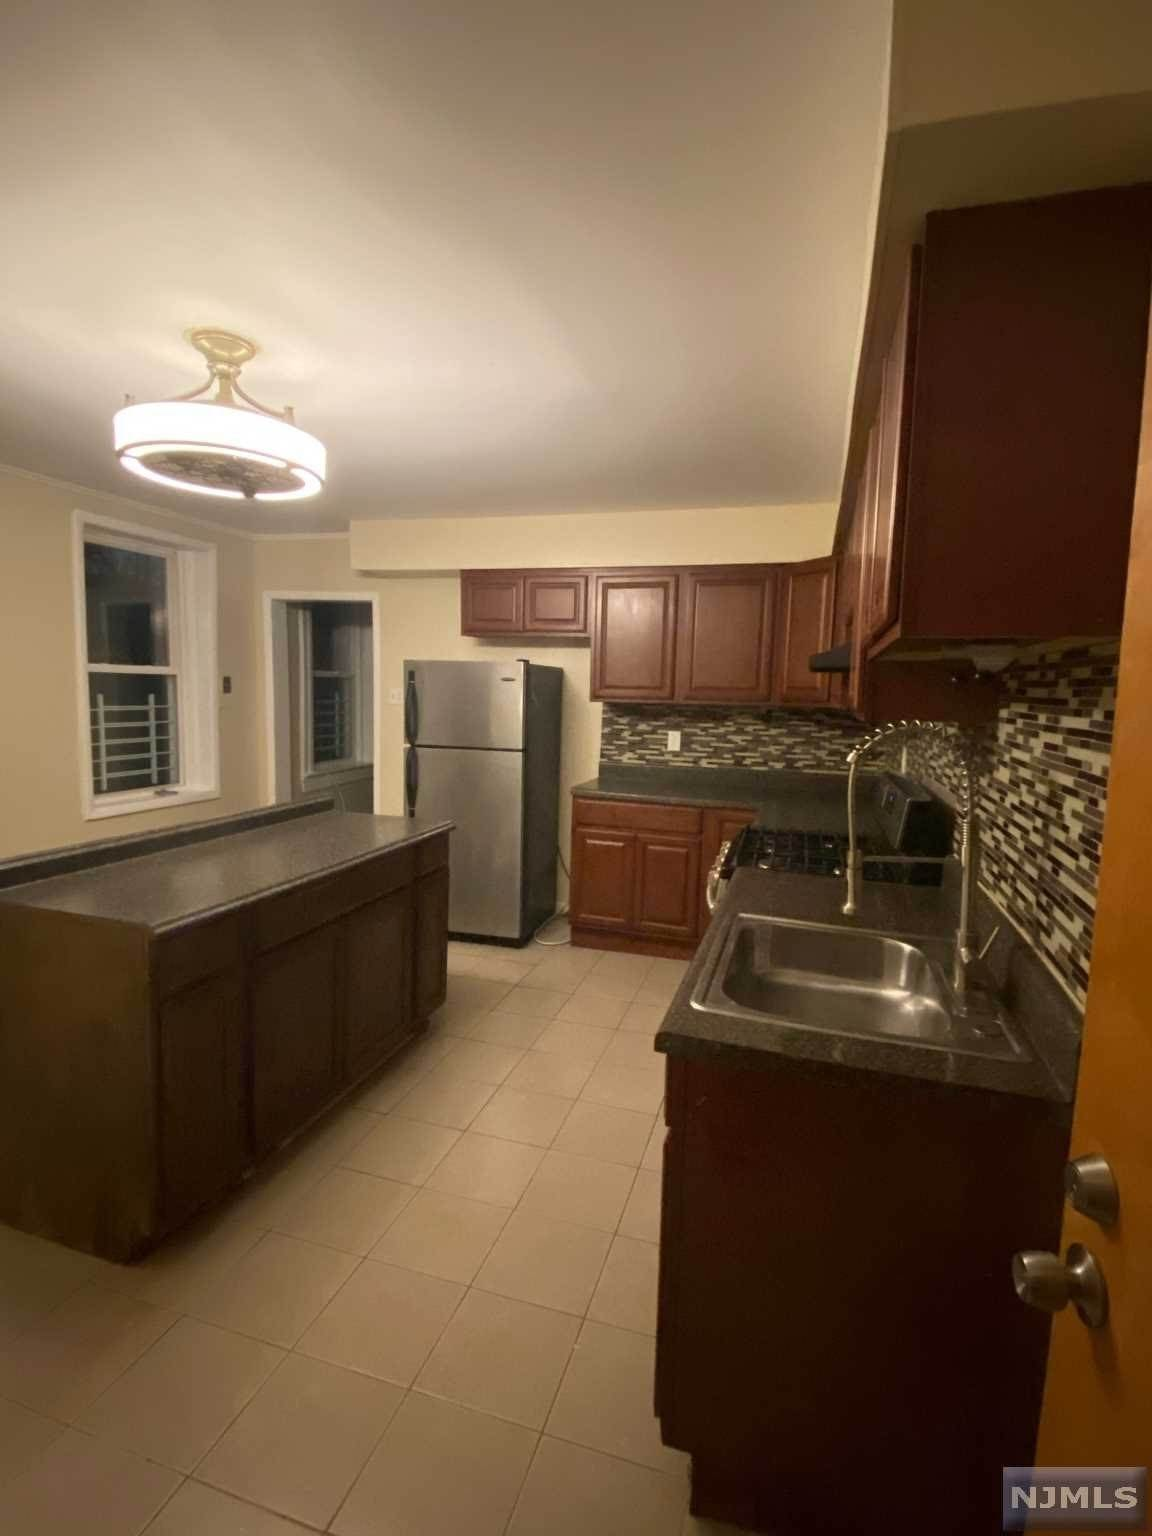 Rental Communities for Rent at 396 Chestnut Street #2 Newark, New Jersey, 07105 United States